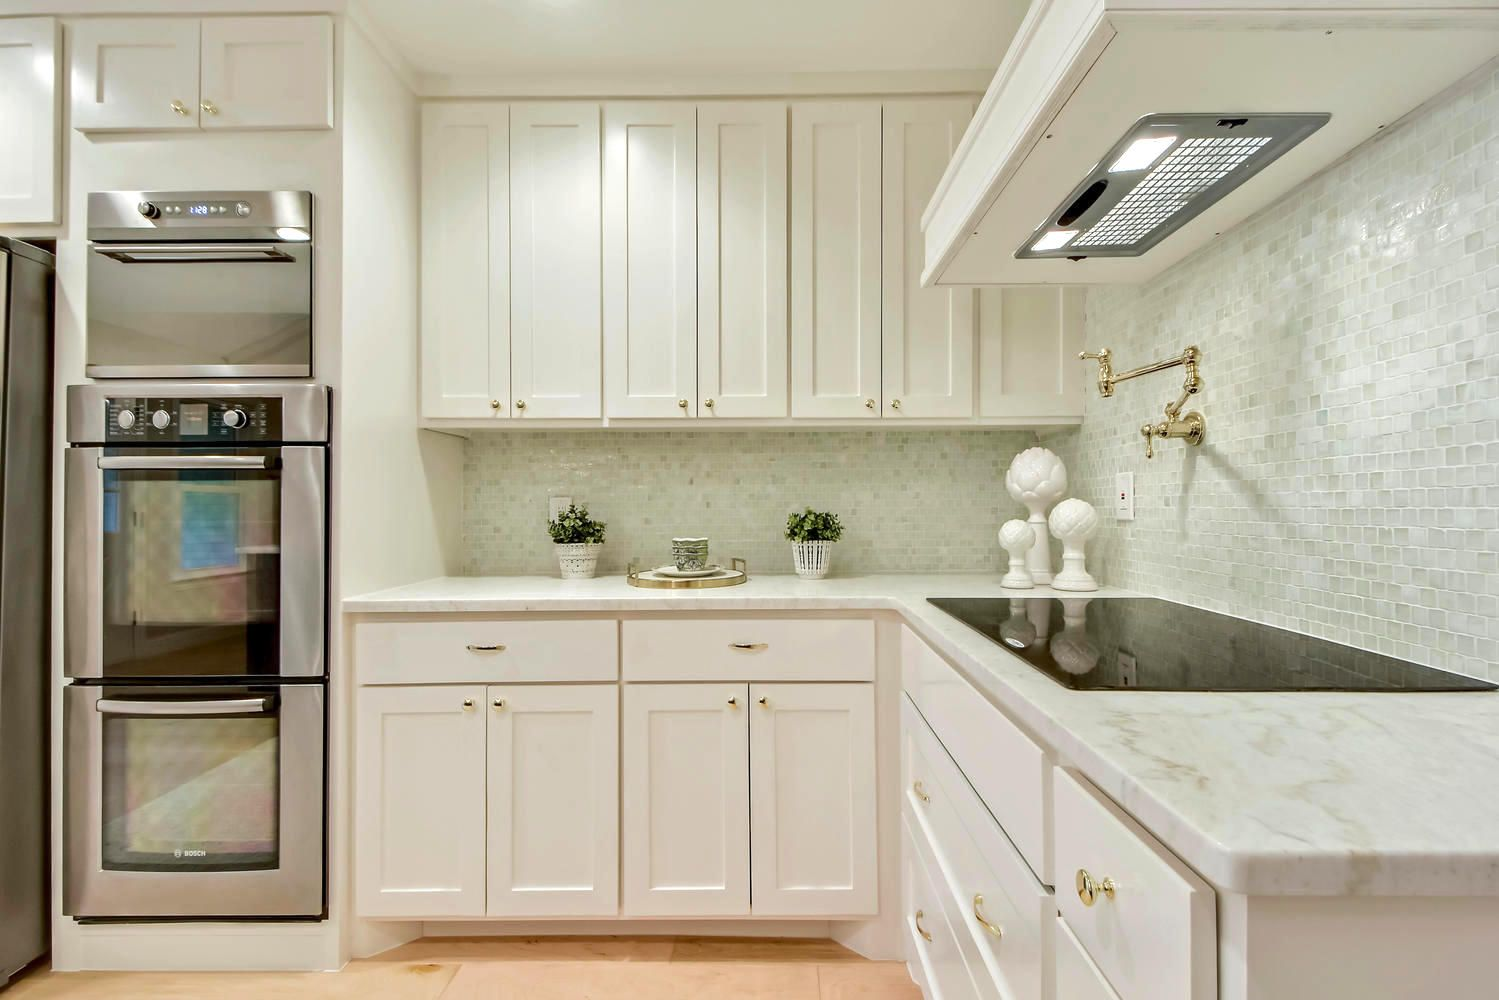 Full galley kitchen remodel by Melisa Clement Designs, LLC in Austin ...